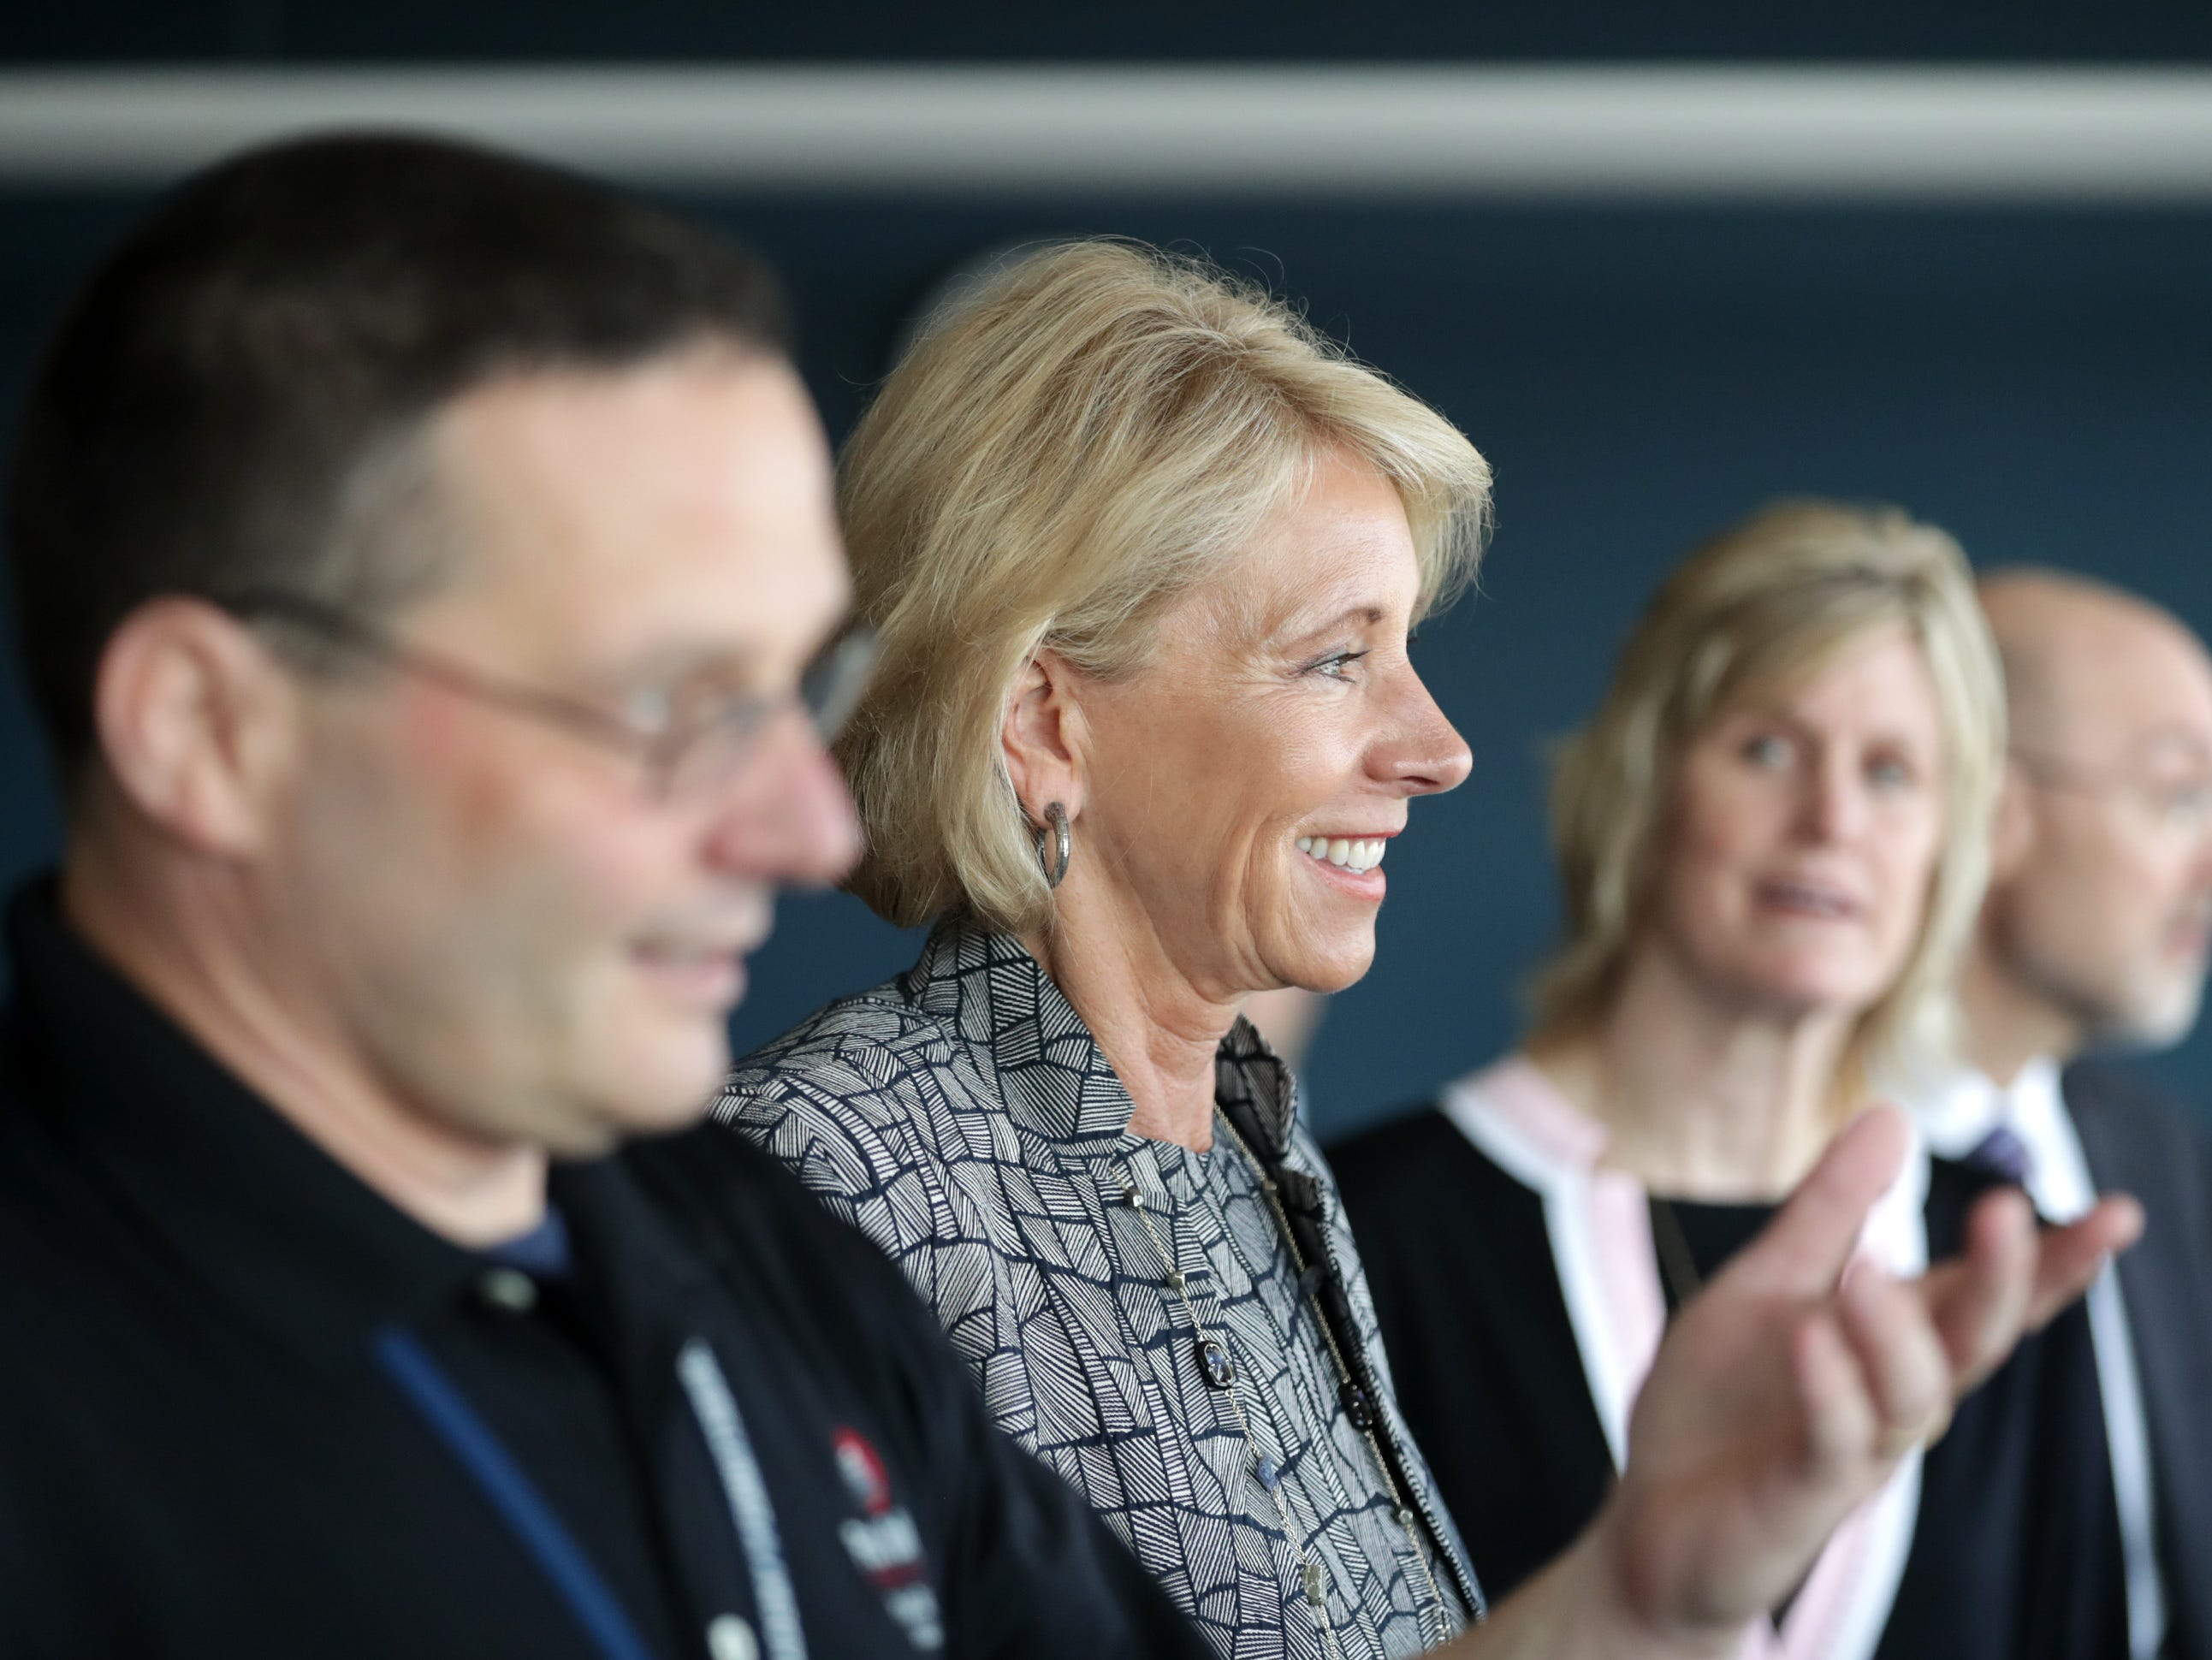 U.S. Secretary of Education Betsy DeVos takes a tour, led by Associate Dean Chris Fischer, to see firsthand how Fox Valley Technical College's Public Safety Training Center is merging classroom lessons with reality-based hands-on training on Tuesday, July 24, 2018 in Greenville, Wis.  Wm. Glasheen/USA TODAY NETWORK-Wisconsin